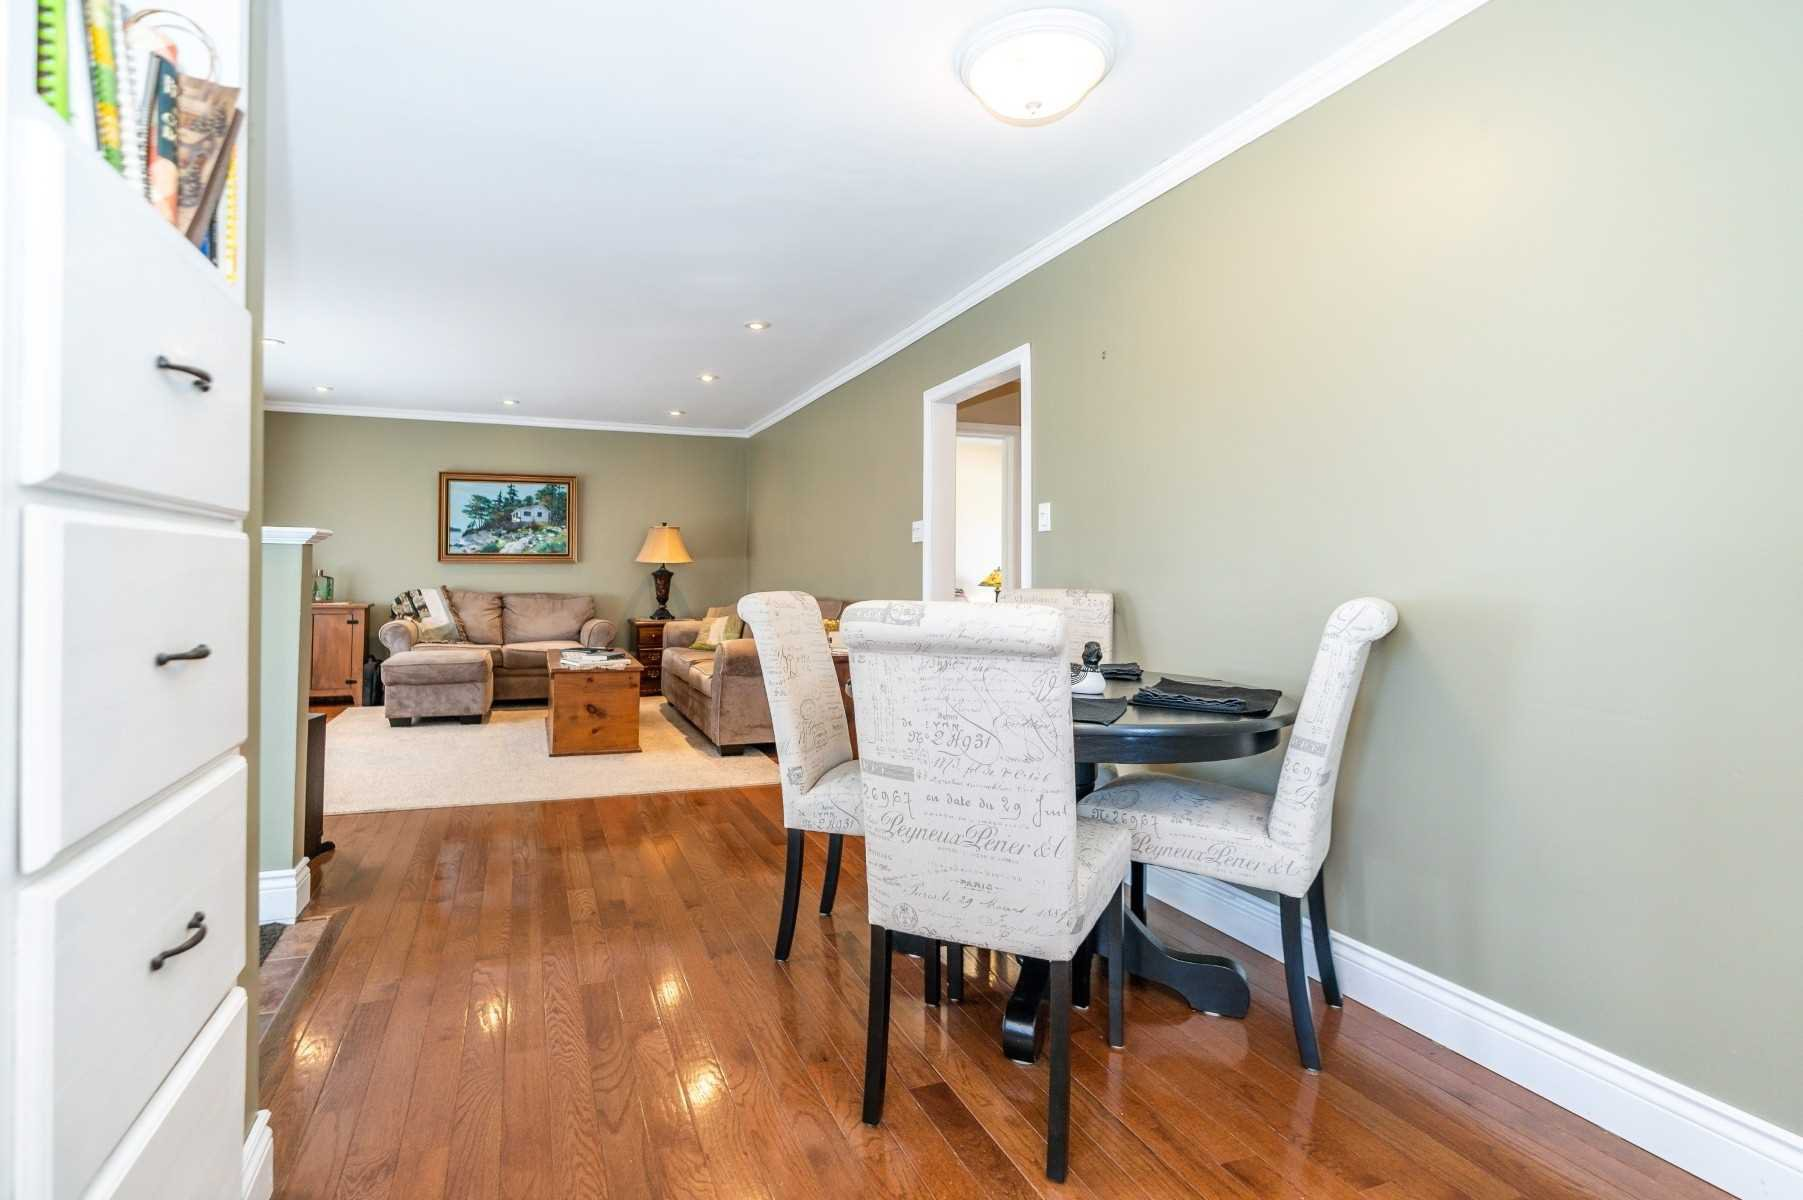 Photo 39: Photos: 40 Eastlawn Street in Oshawa: Donevan House (Bungalow) for sale : MLS®# E4769026